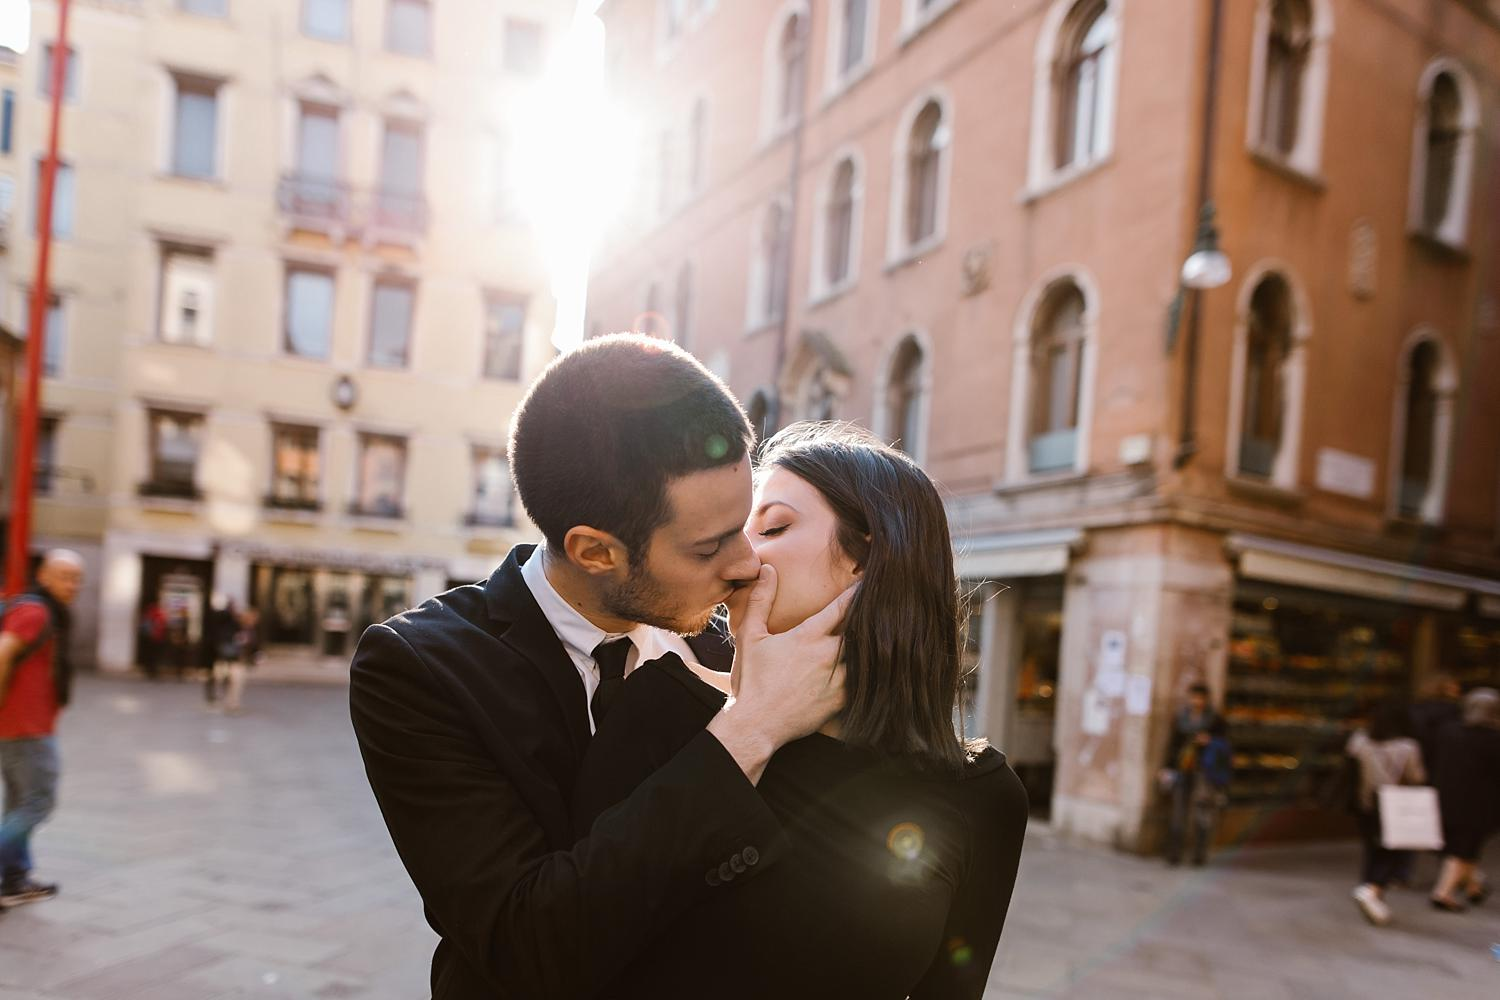 GL 43 - Giulia & Leonardo - An Intimate Shooting in Venice